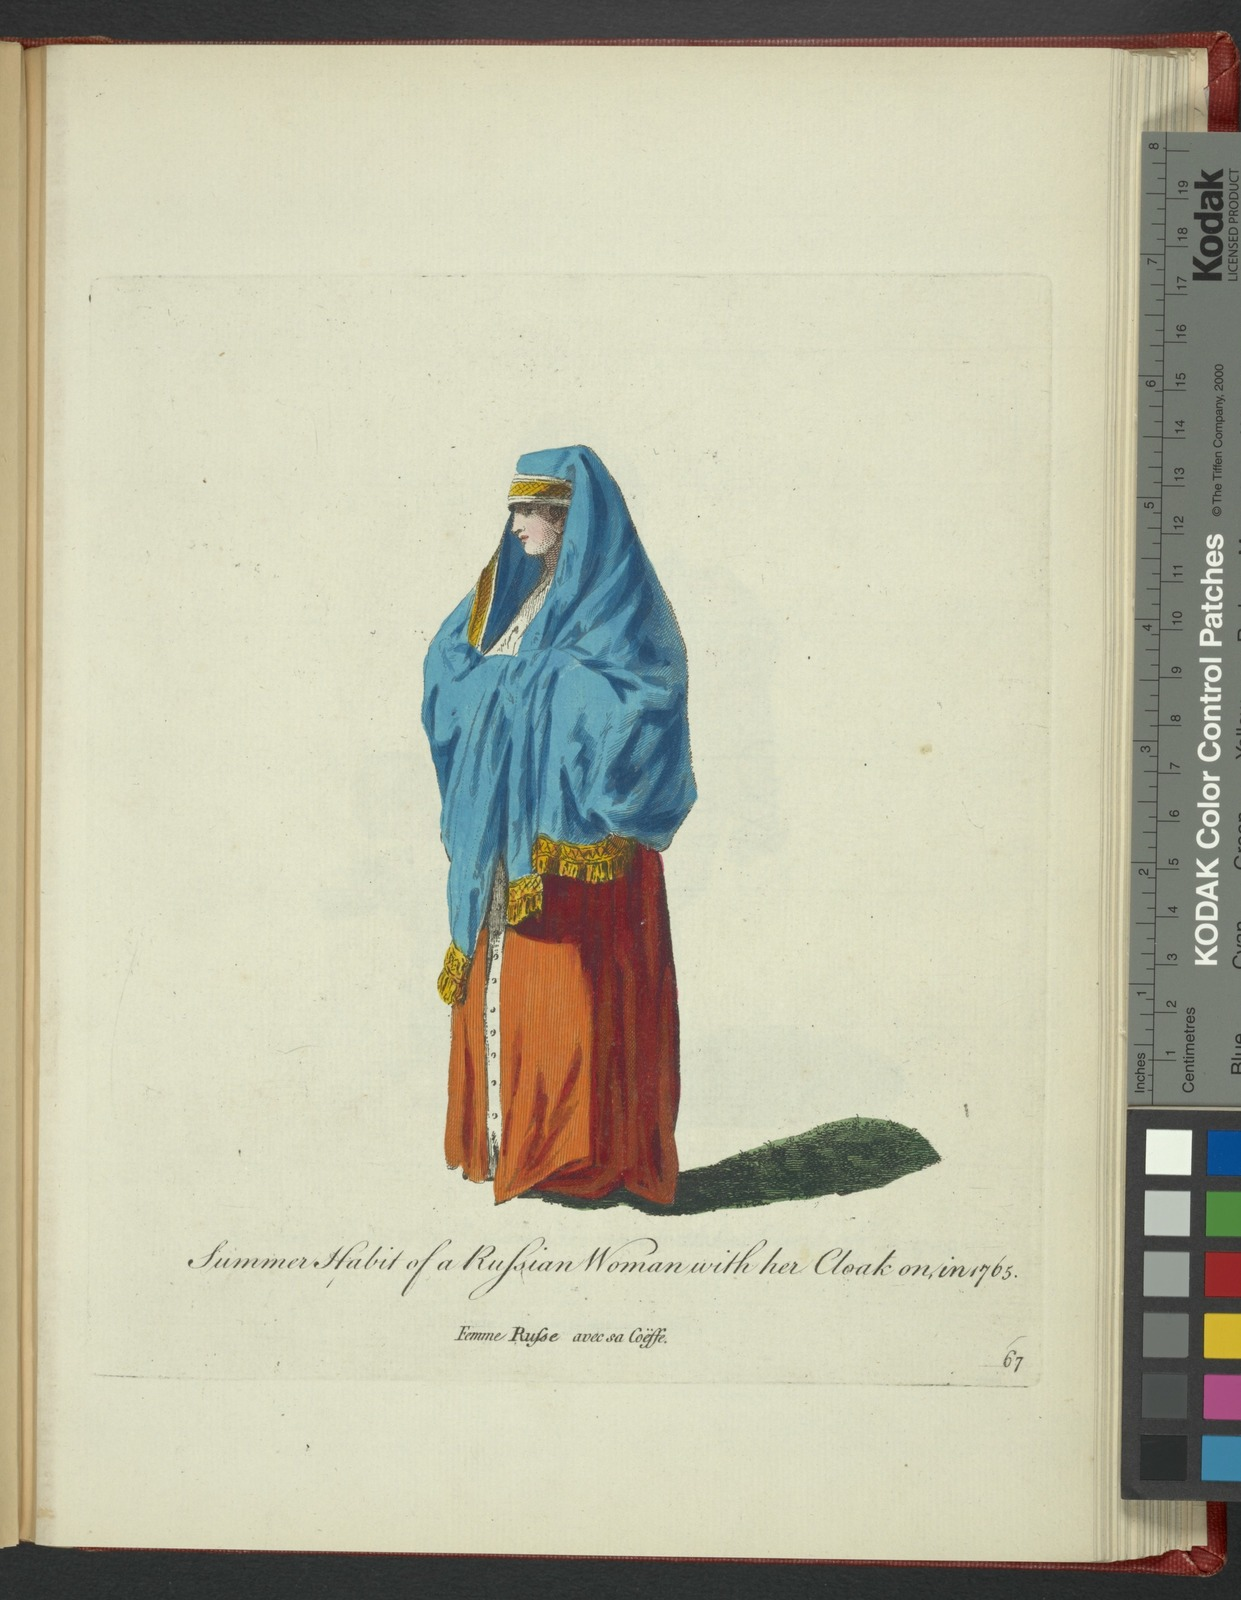 Summer habit of a Russian woman with her cloak on in 1765. Femme Russe avec sa coësse.